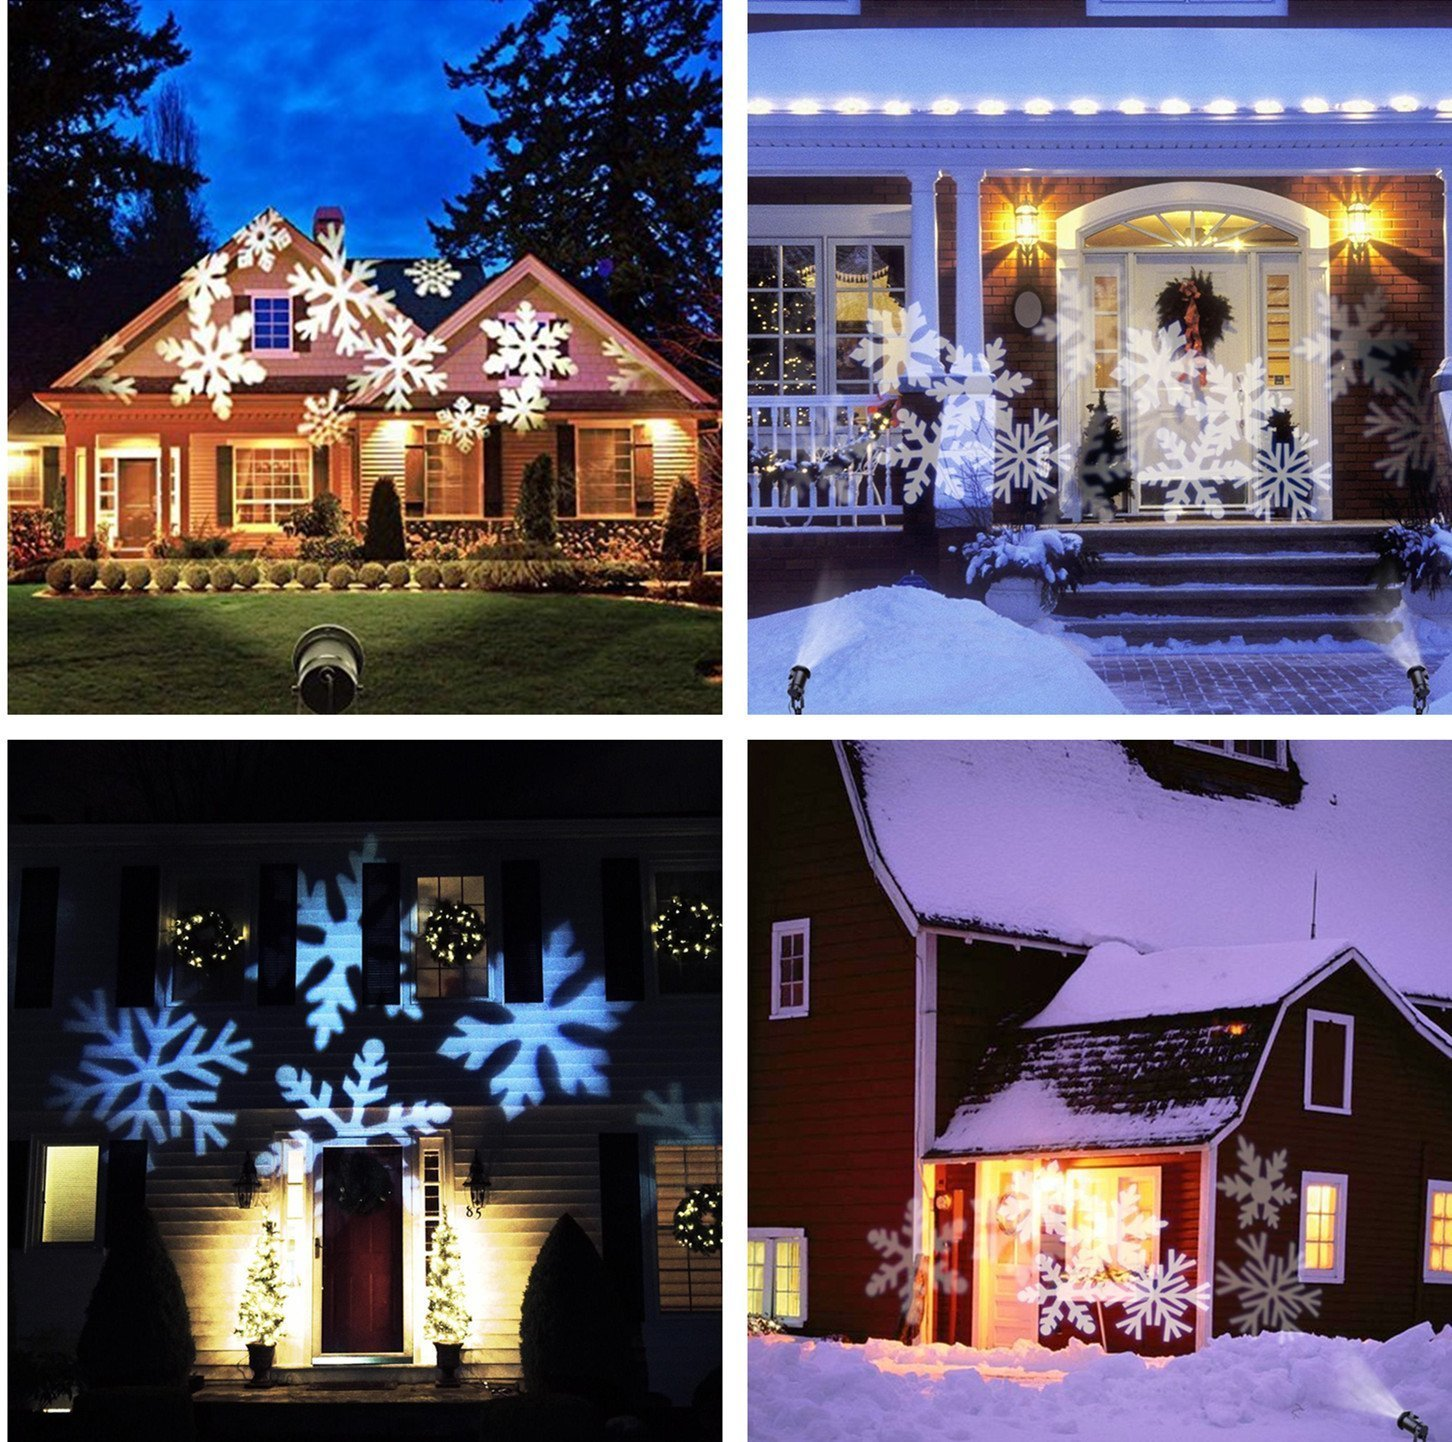 Christmas Projector Lights, JELEGANT LED Landscape Lights Projector Spotlights with Remote Control Waterproof Decoration Lighting with 12pcs Switchable Pattern Show for Halloween Holiday Party by JELEGANT (Image #6)